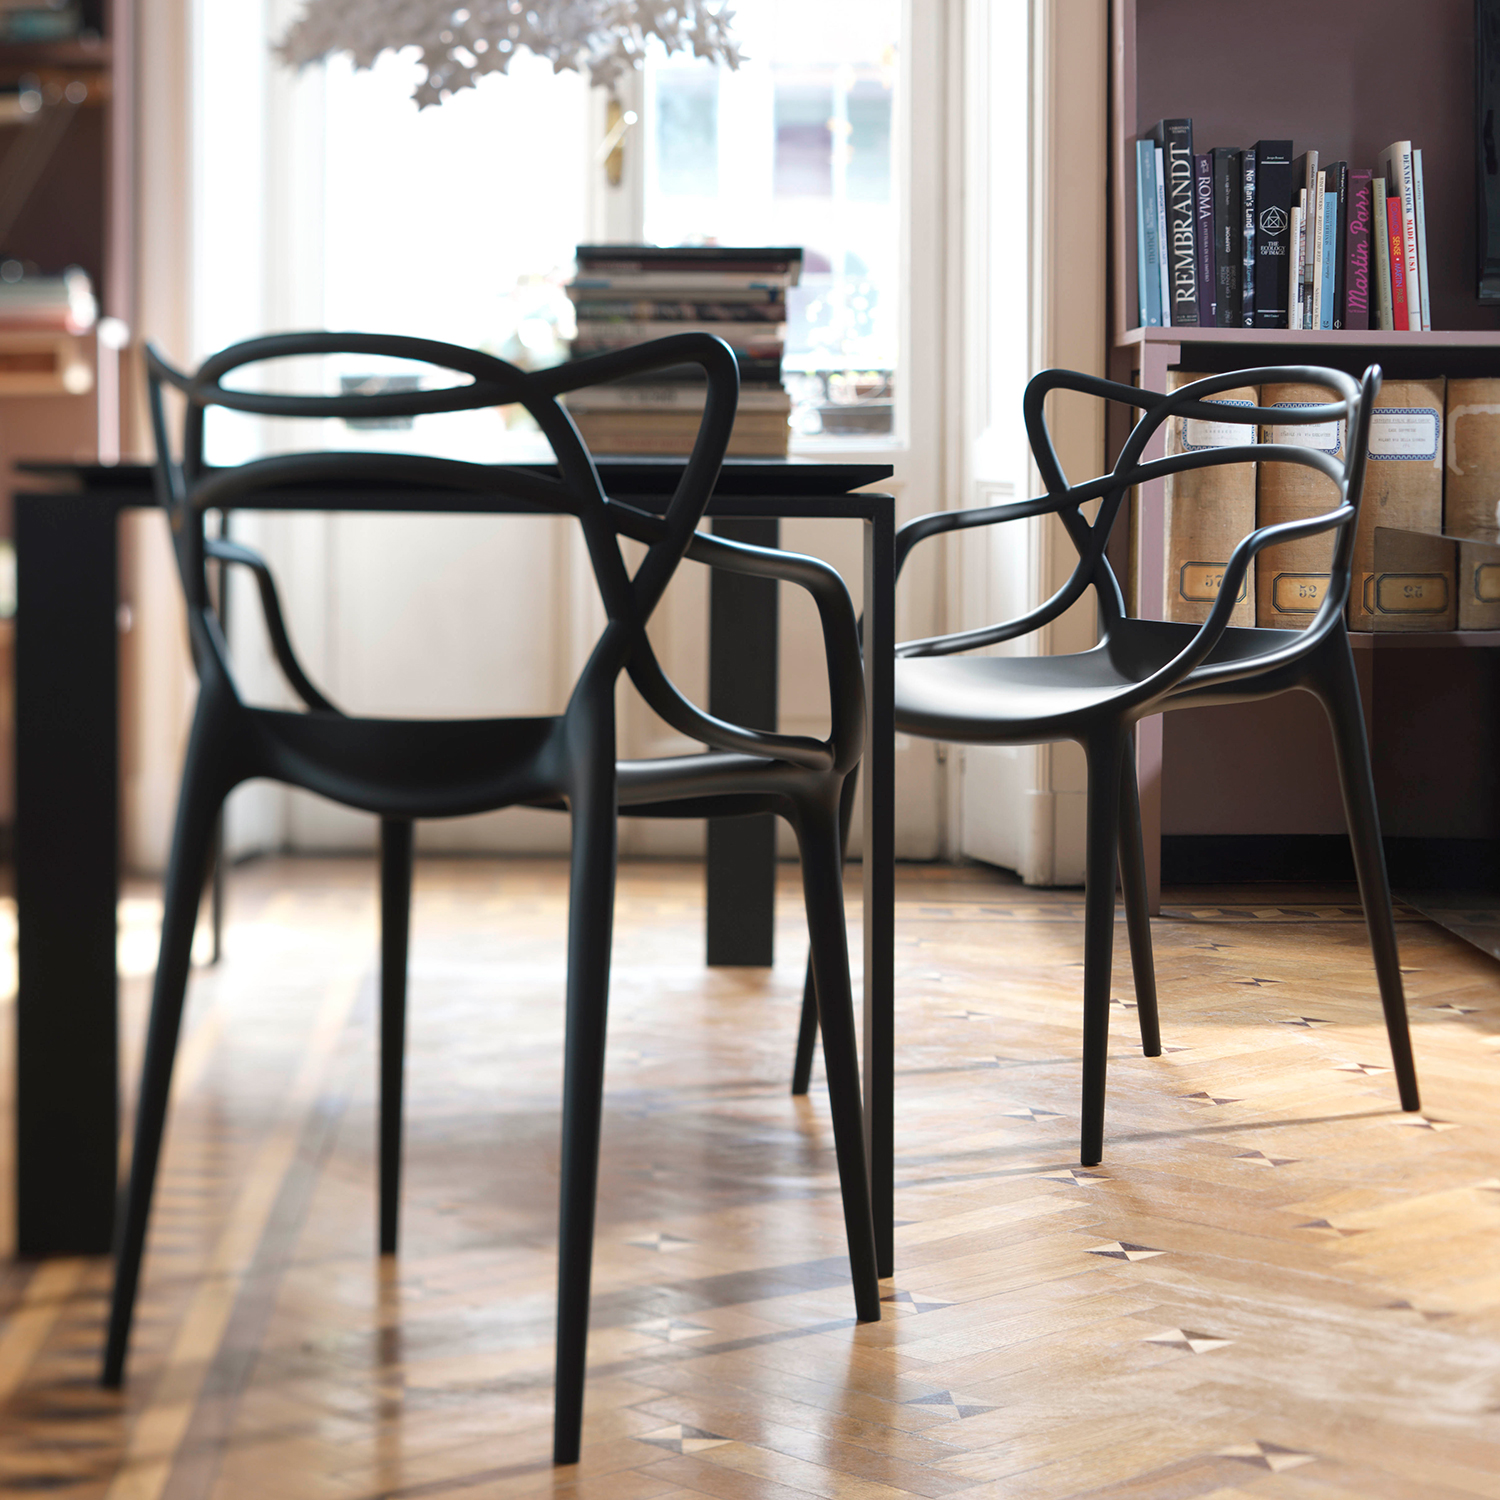 Masters Chair Black Philippe Starck & Eugeni Quitllet Kartell